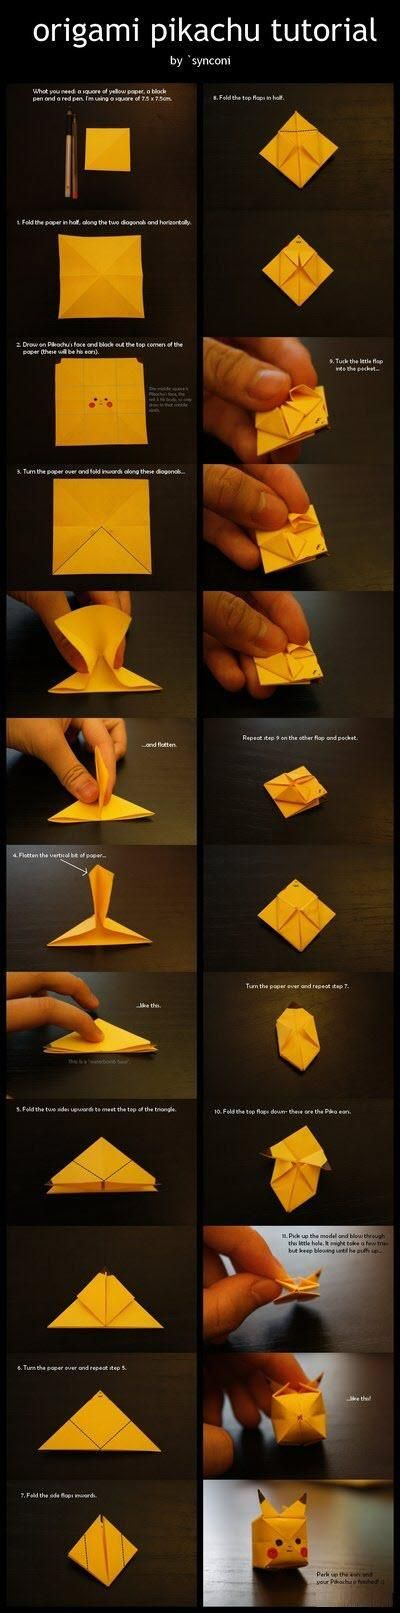 We're making sticky note origami at Northview on March 18 with 9-12 year olds.